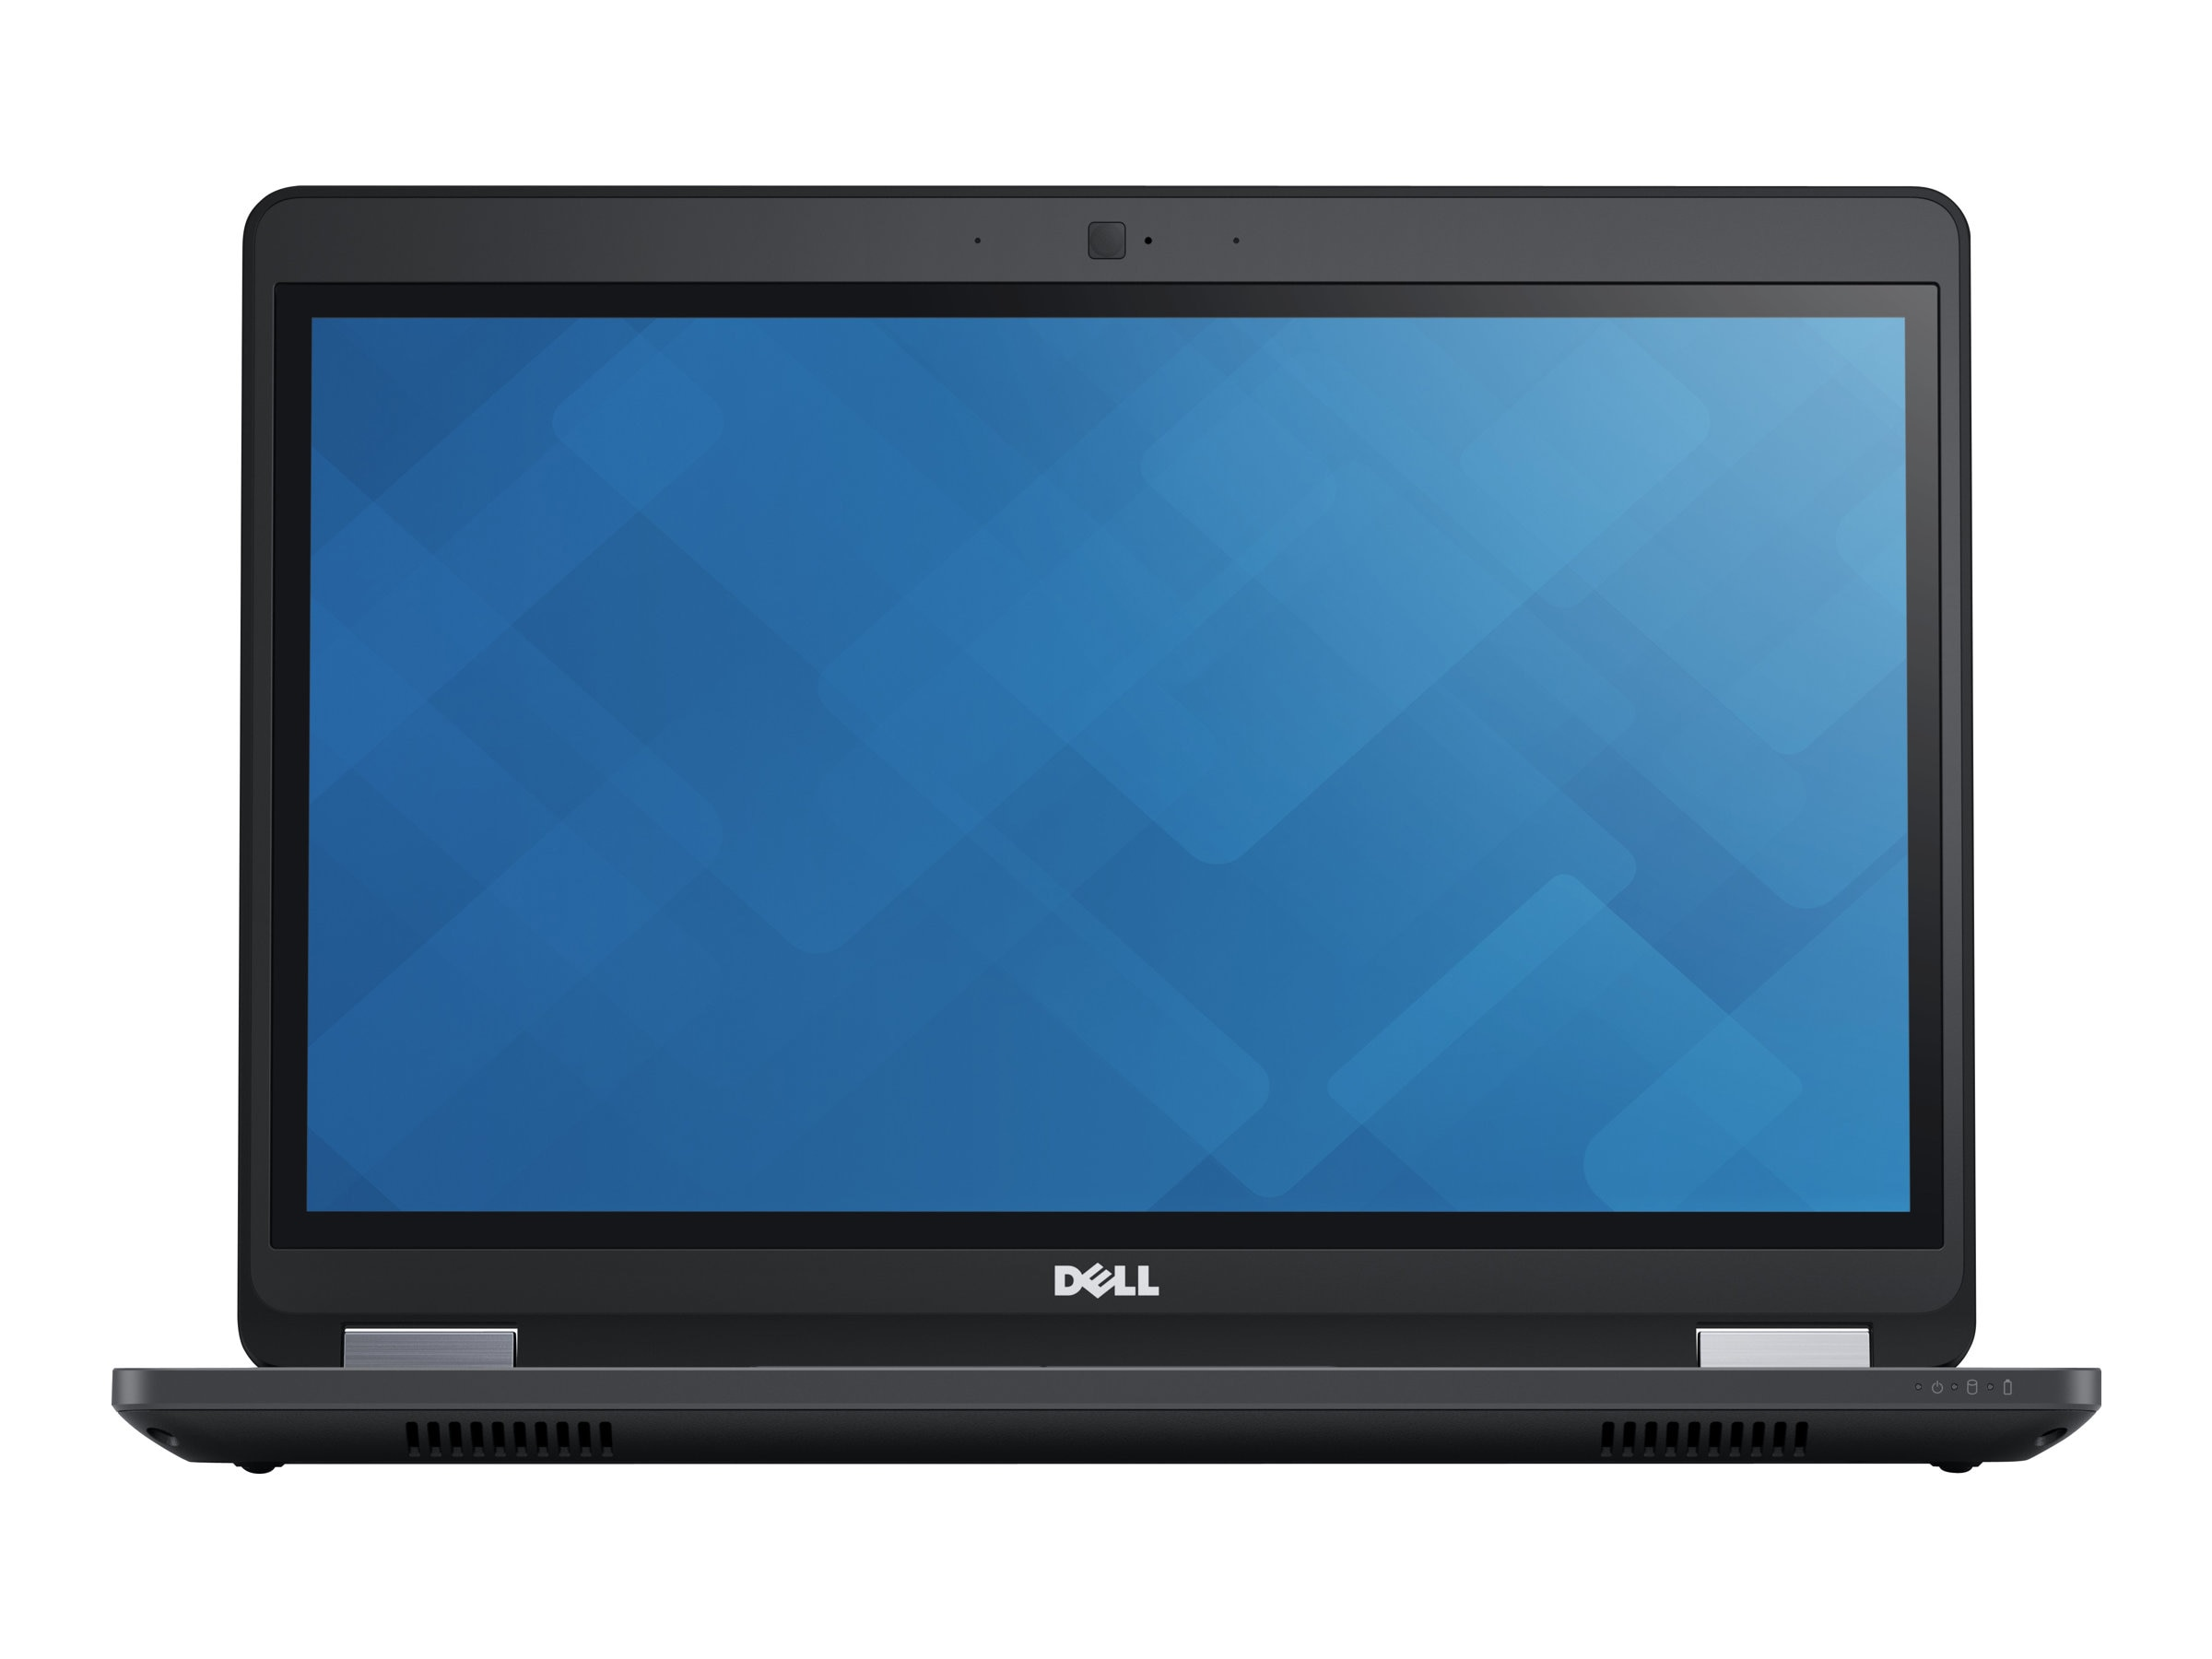 Dell Latitude E5470U Core i5-6300U 2.4GHz 8GB 500GB ac BT WC 4C 14 FHD W10P64